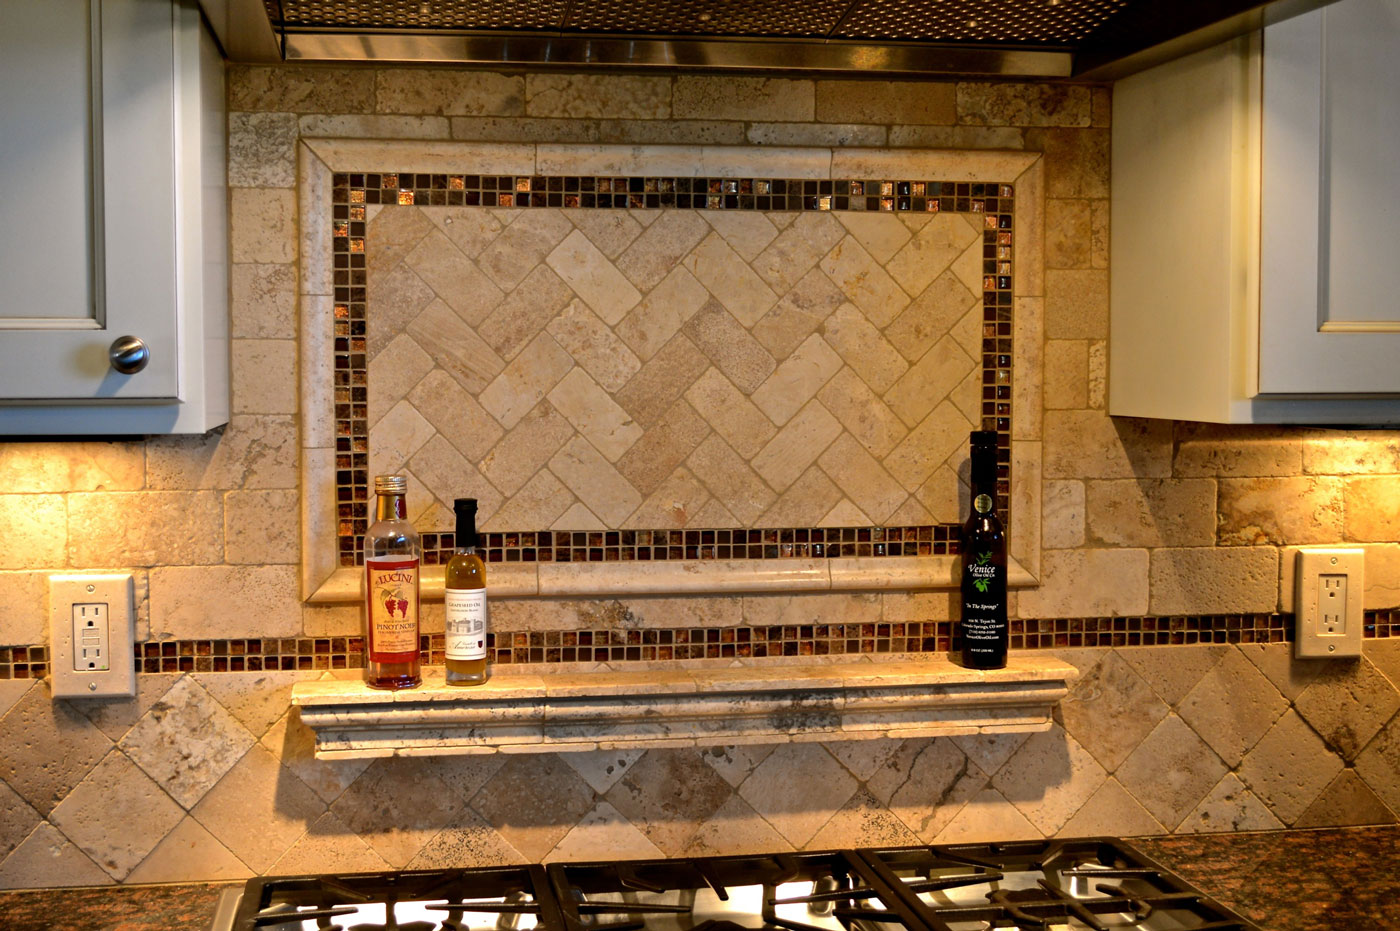 colorado springs interior design custom backsplasjh tile kitchenjpg